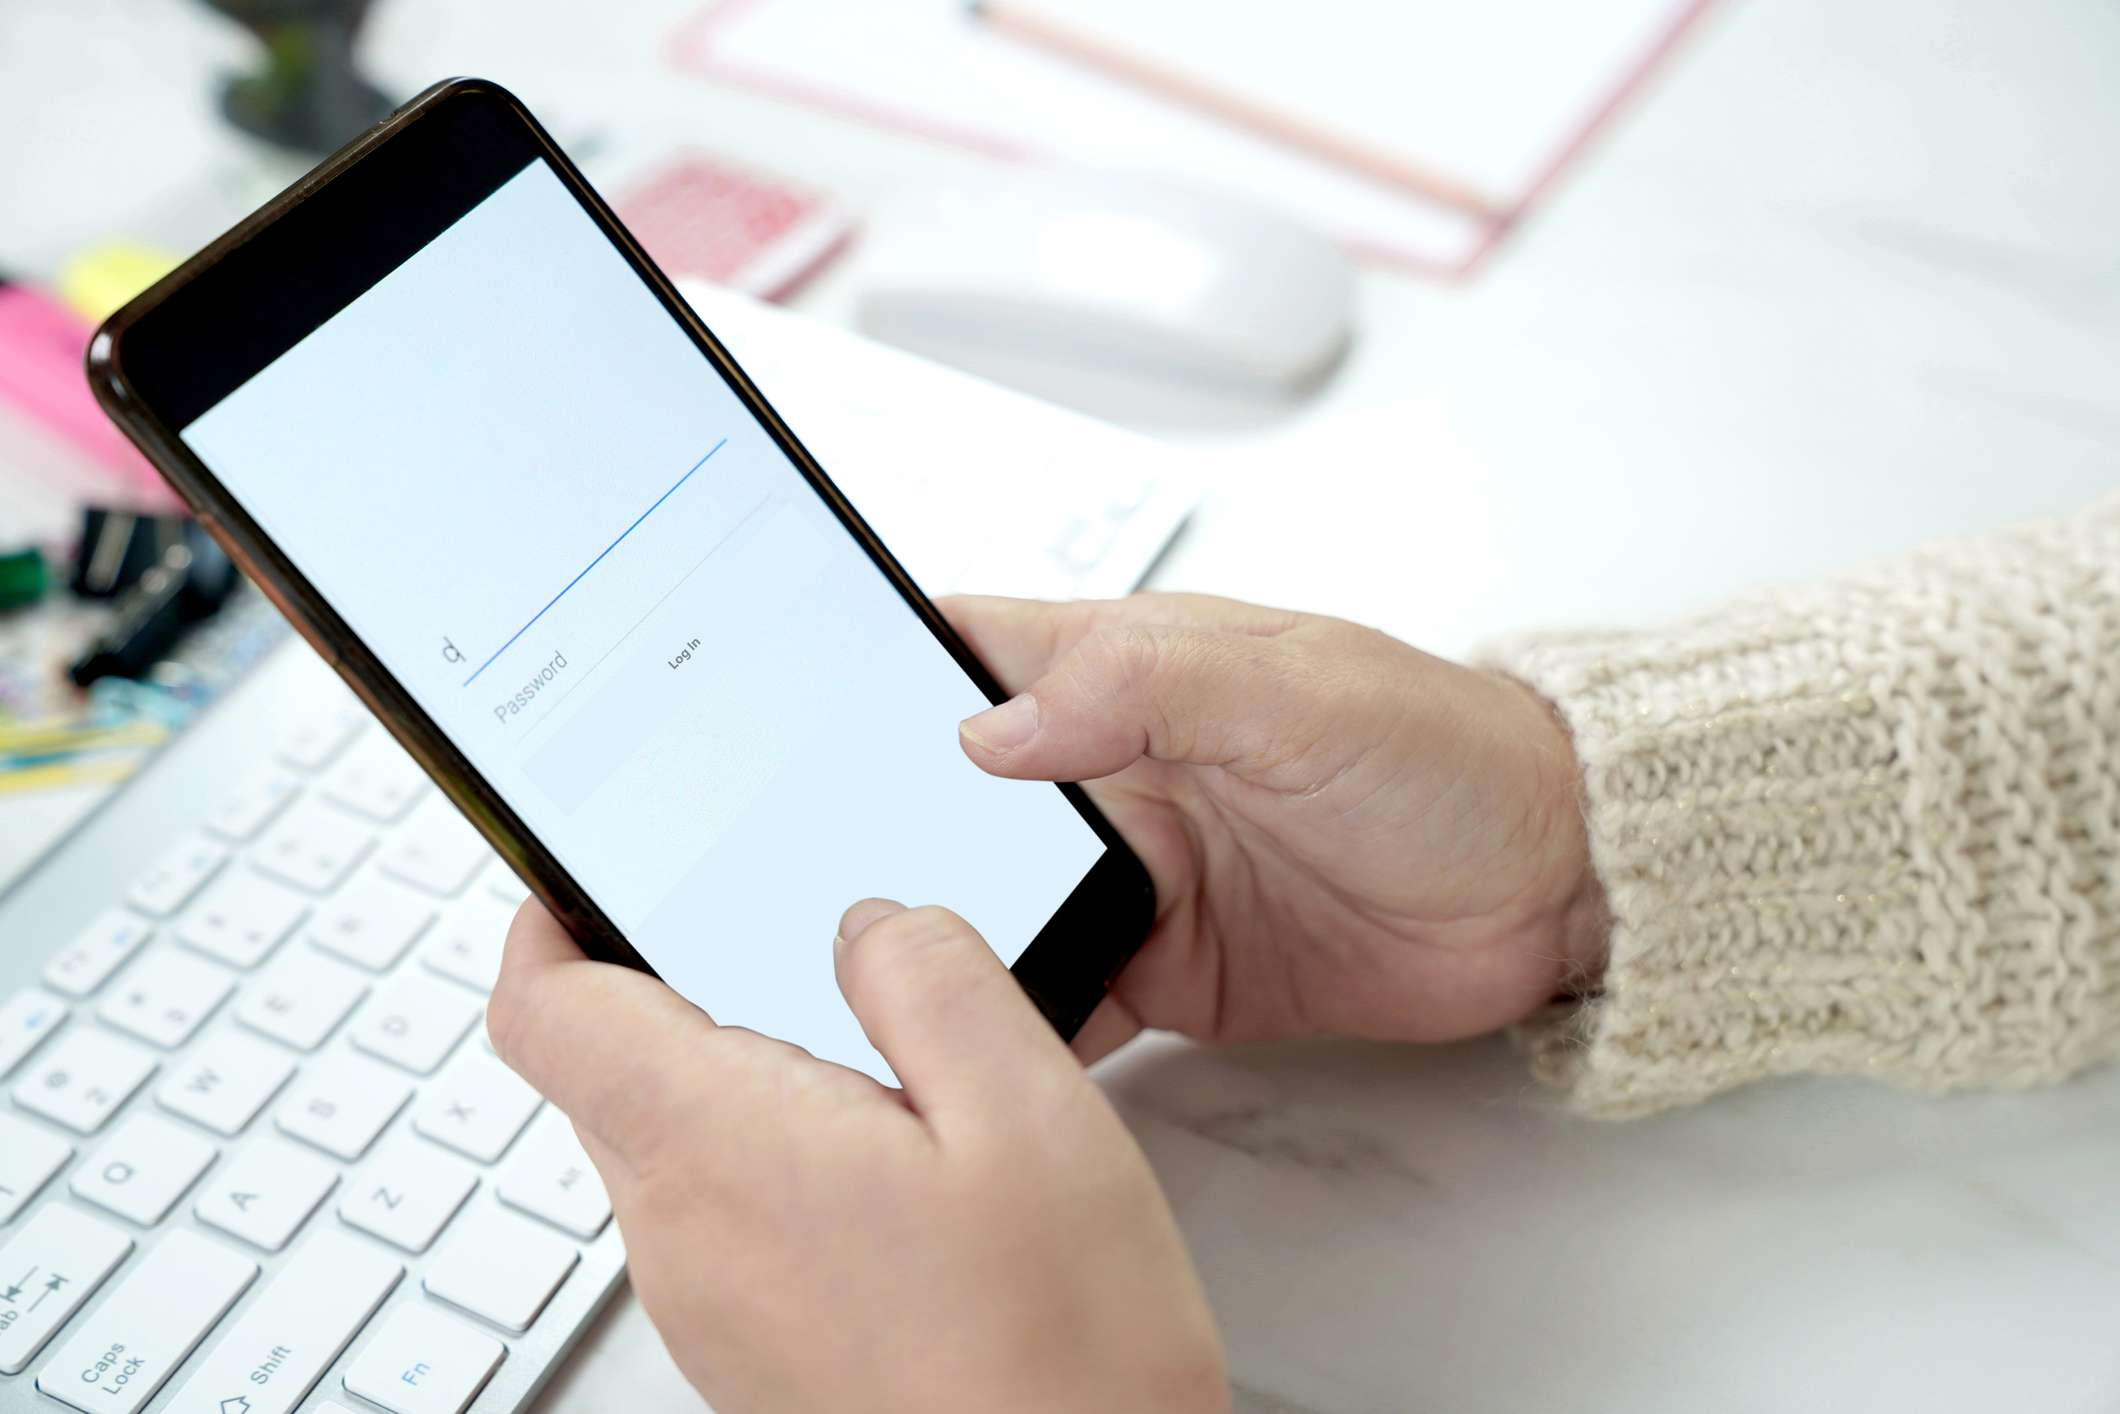 Using Mobile phone to login an Account in to social media connect with friends